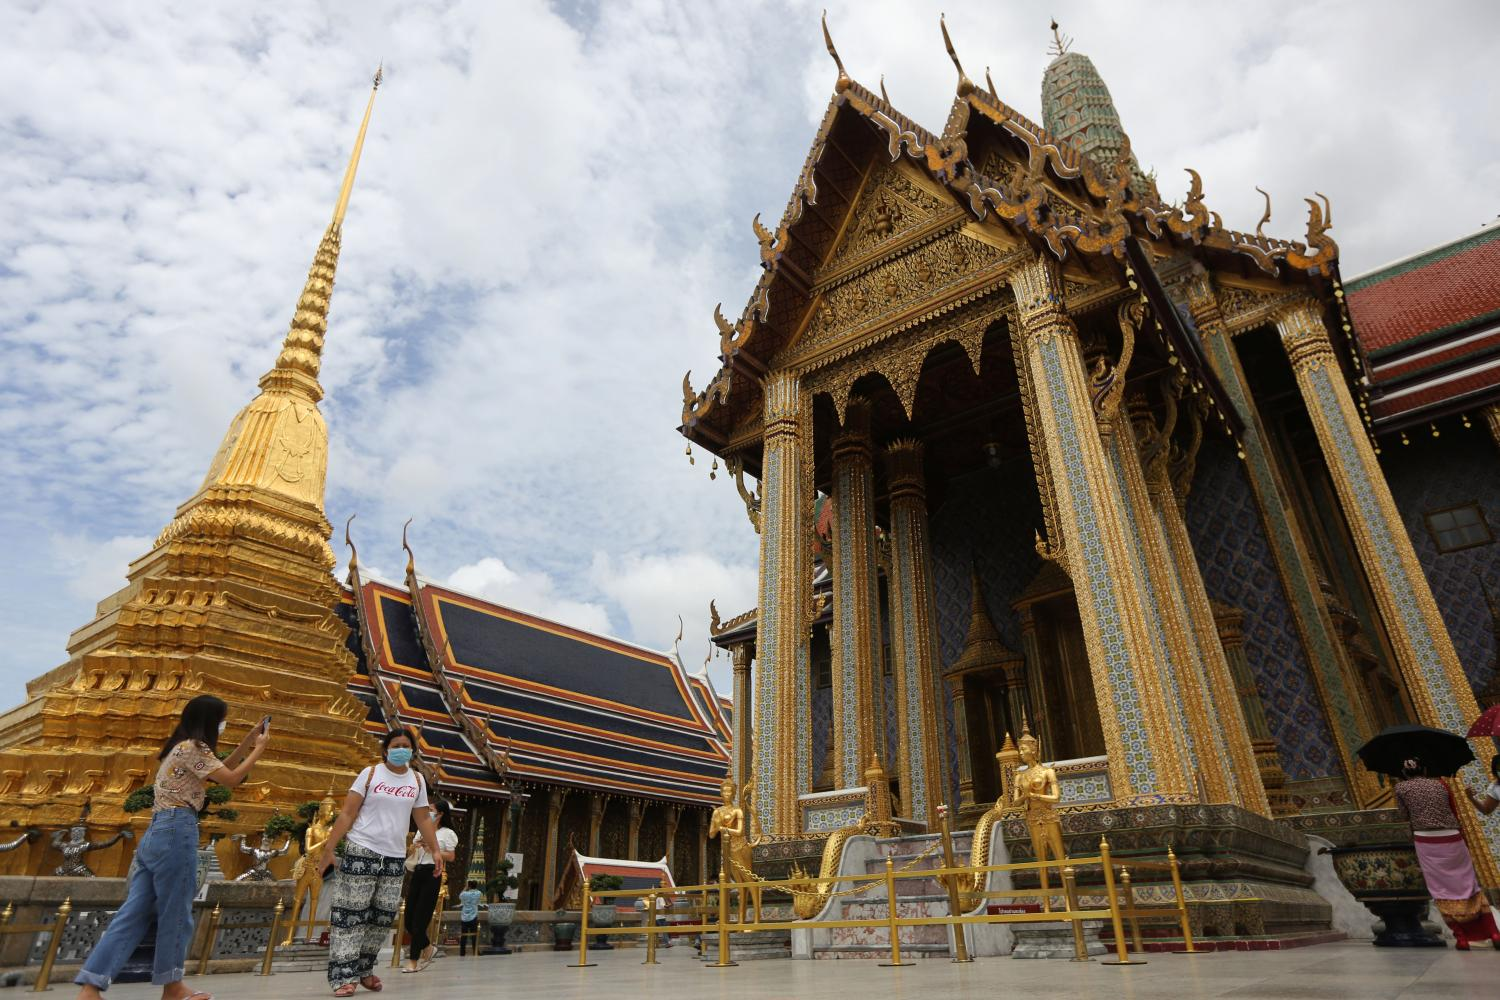 The Temple of Emerald Buddha, which is usually packed with Chinese group tours, has few visitors nowadays. Chinese visitors could return during the Golden Week holiday in October, albeit not in tour groups. (Photo: Wichan Charoenkiatpakul)